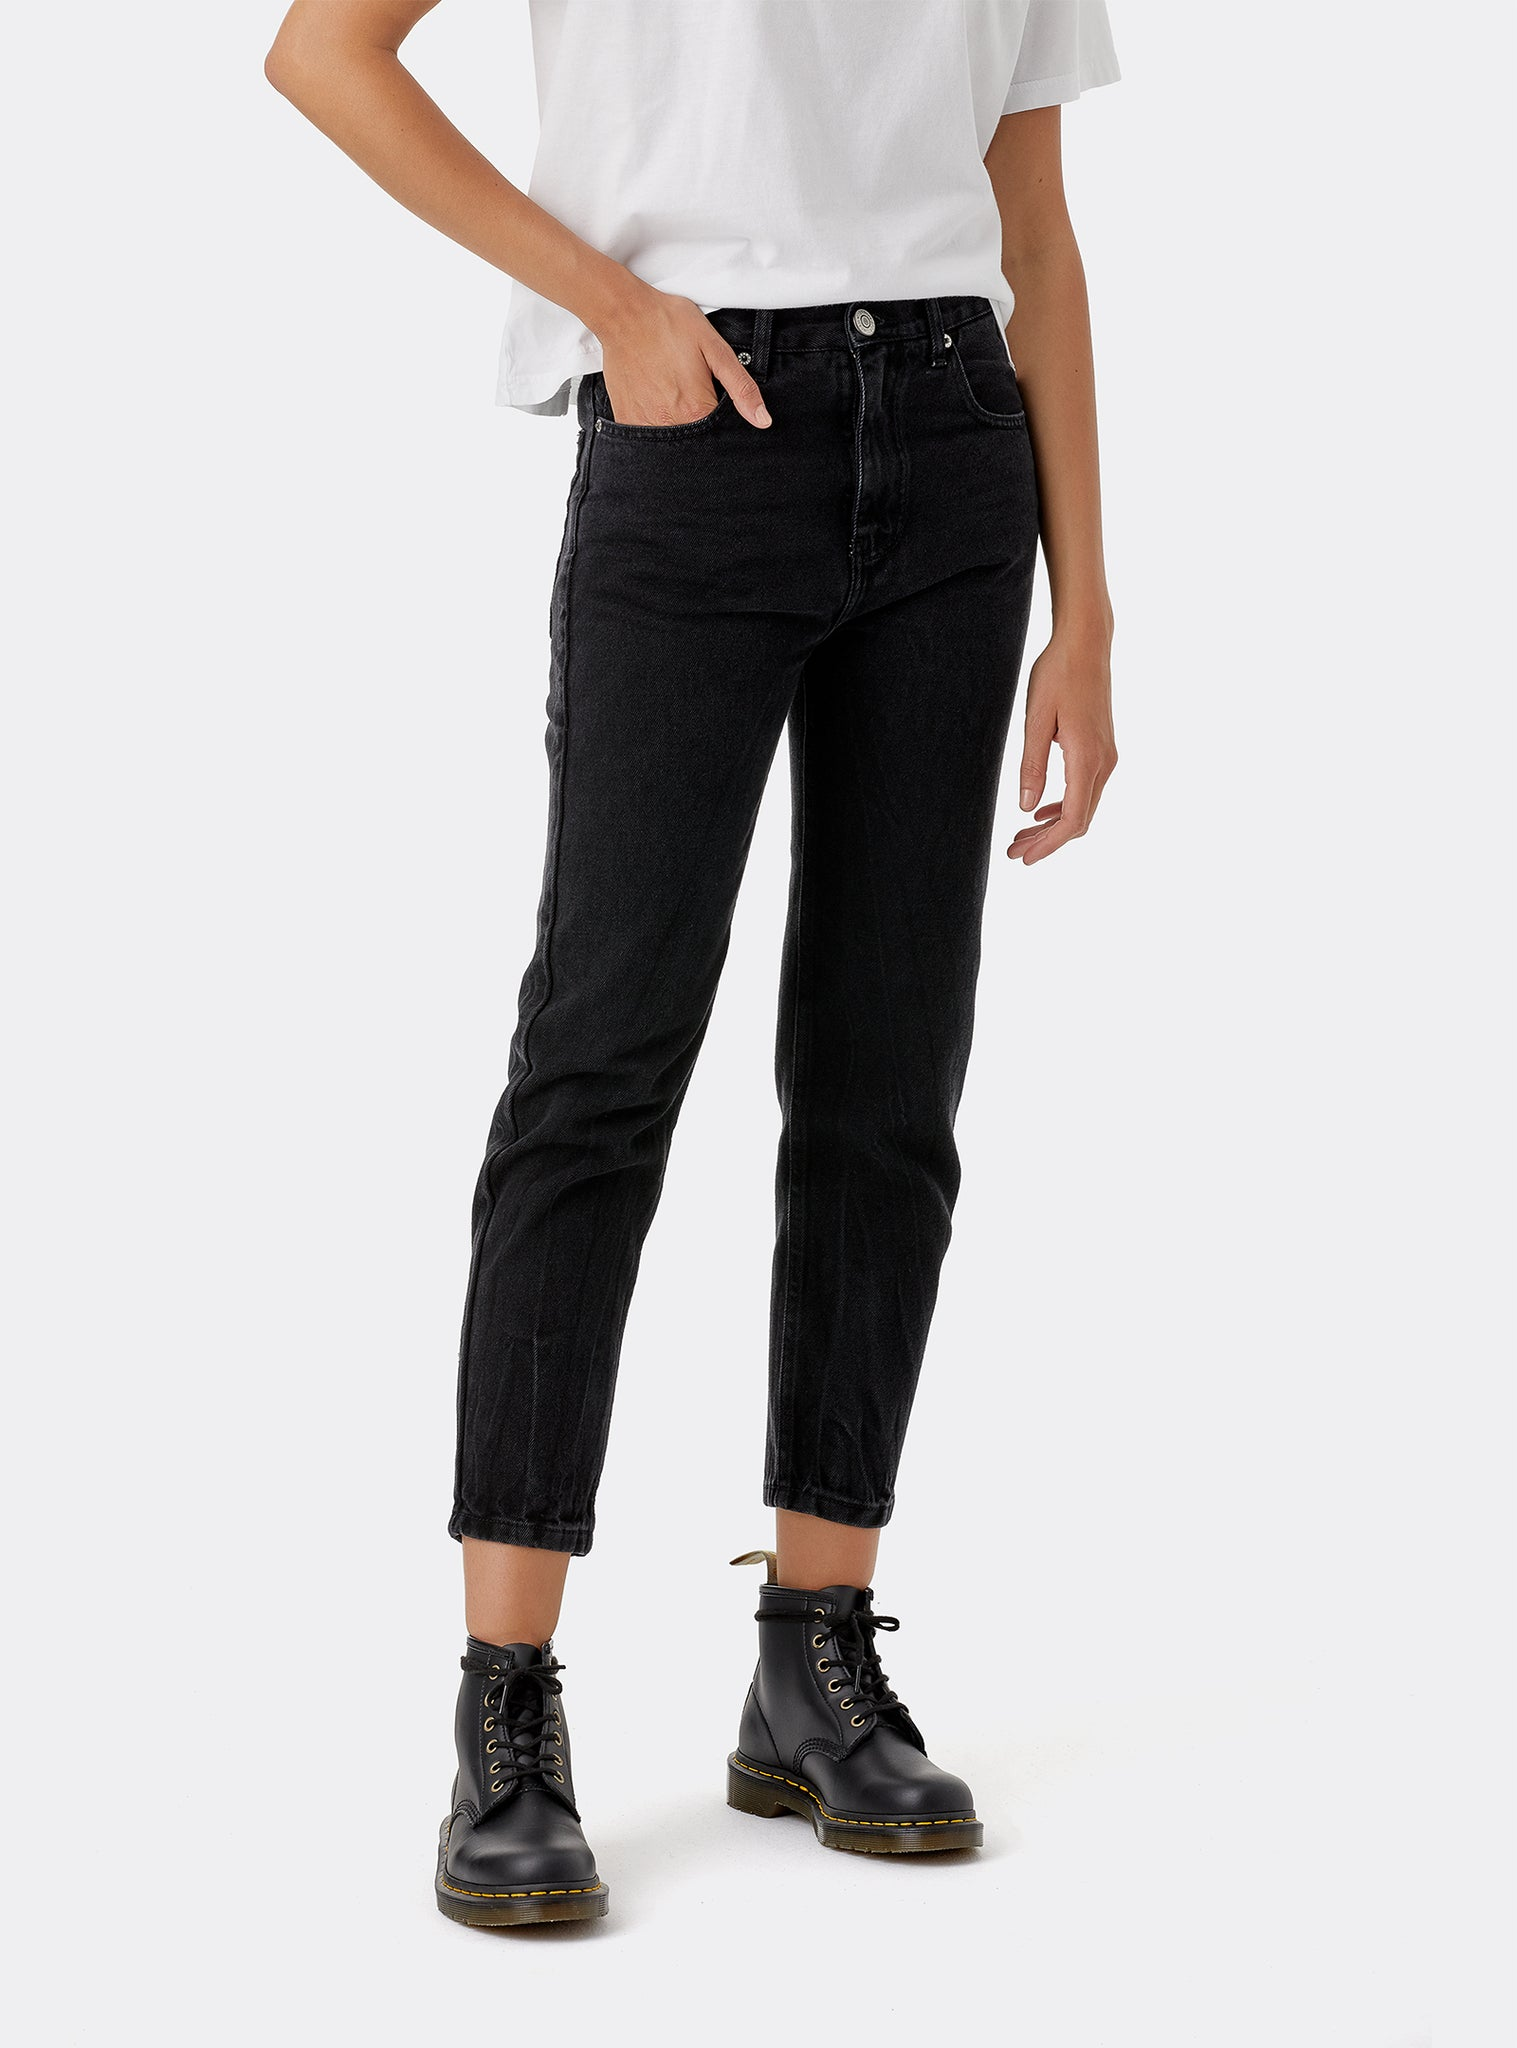 Supermom Pants Black